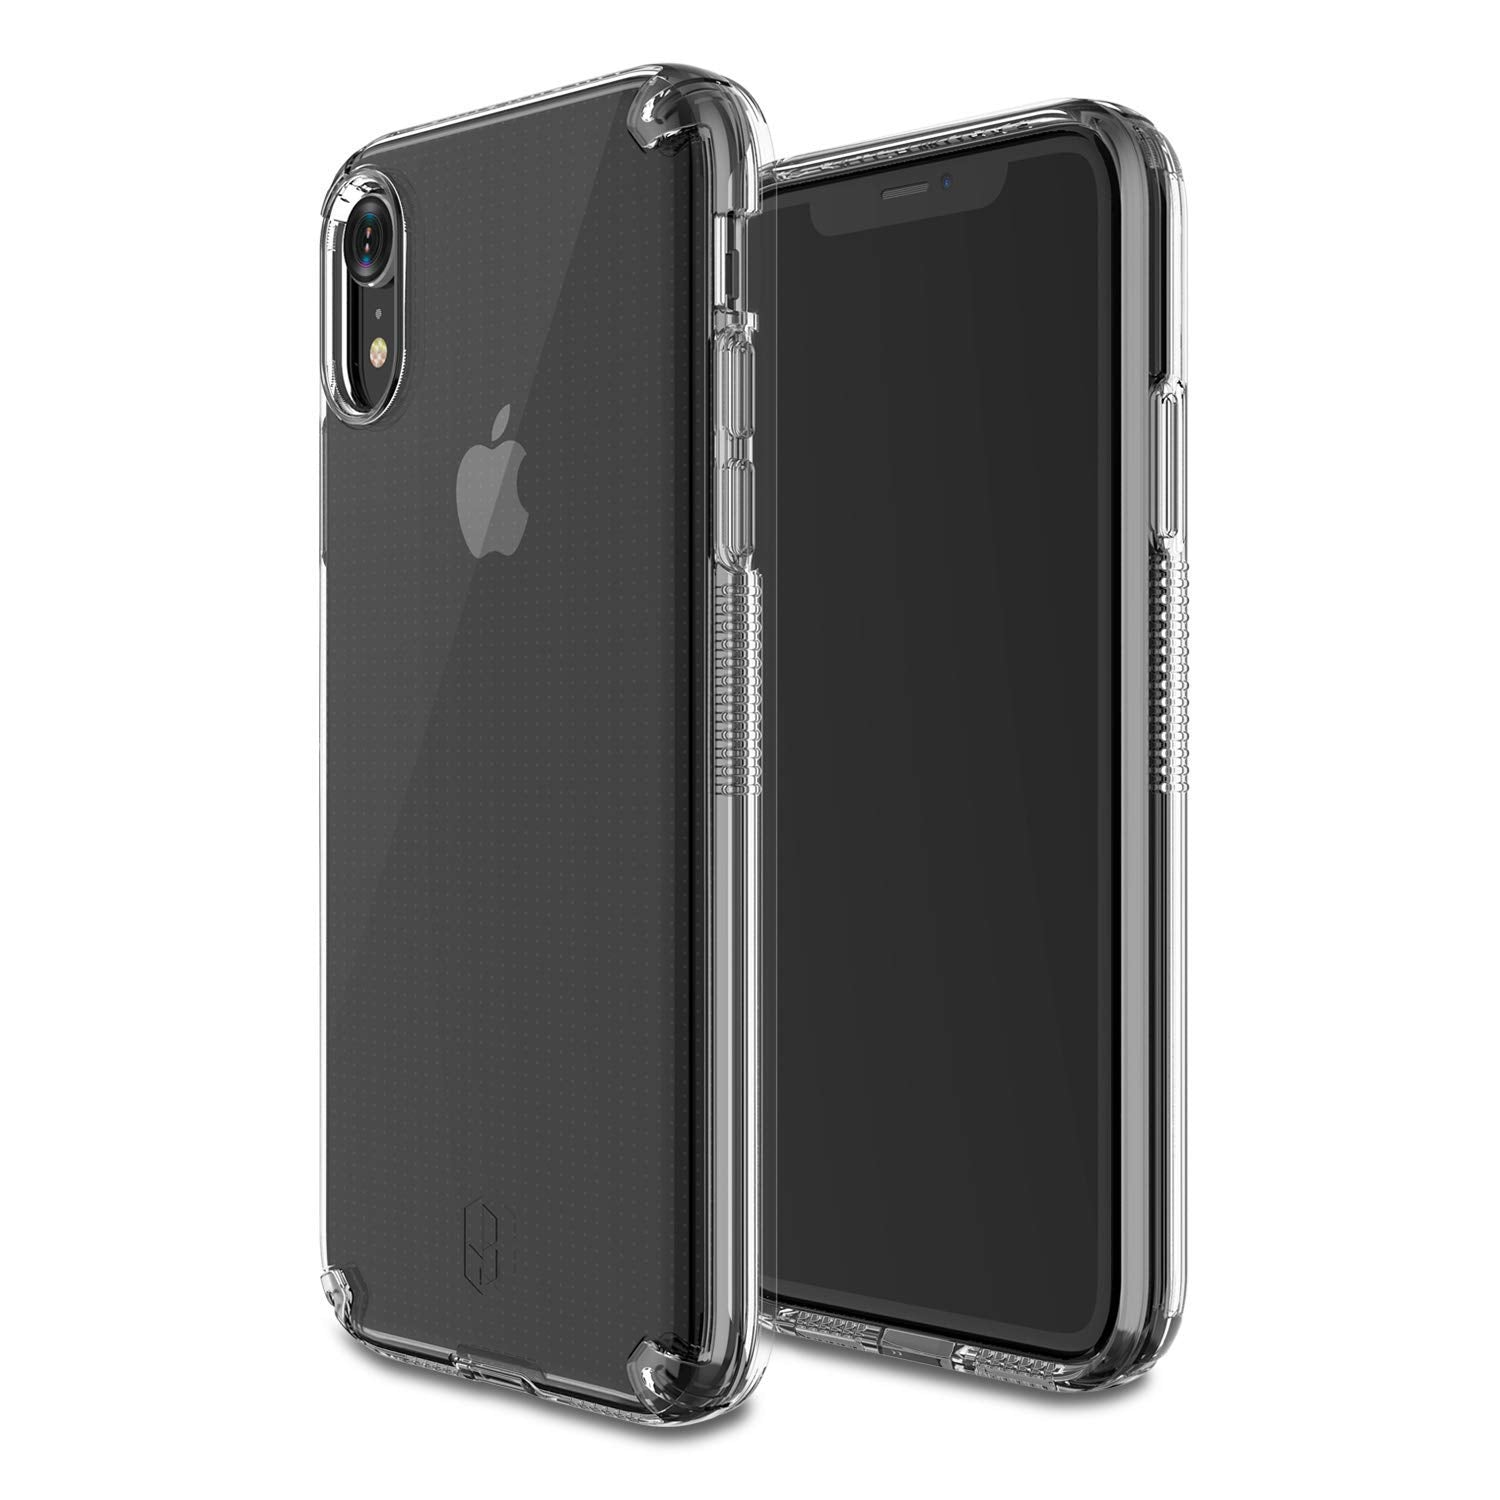 IPHONE XR CASE - LEVEL VISION (Pre-Order - Released on 10/31)